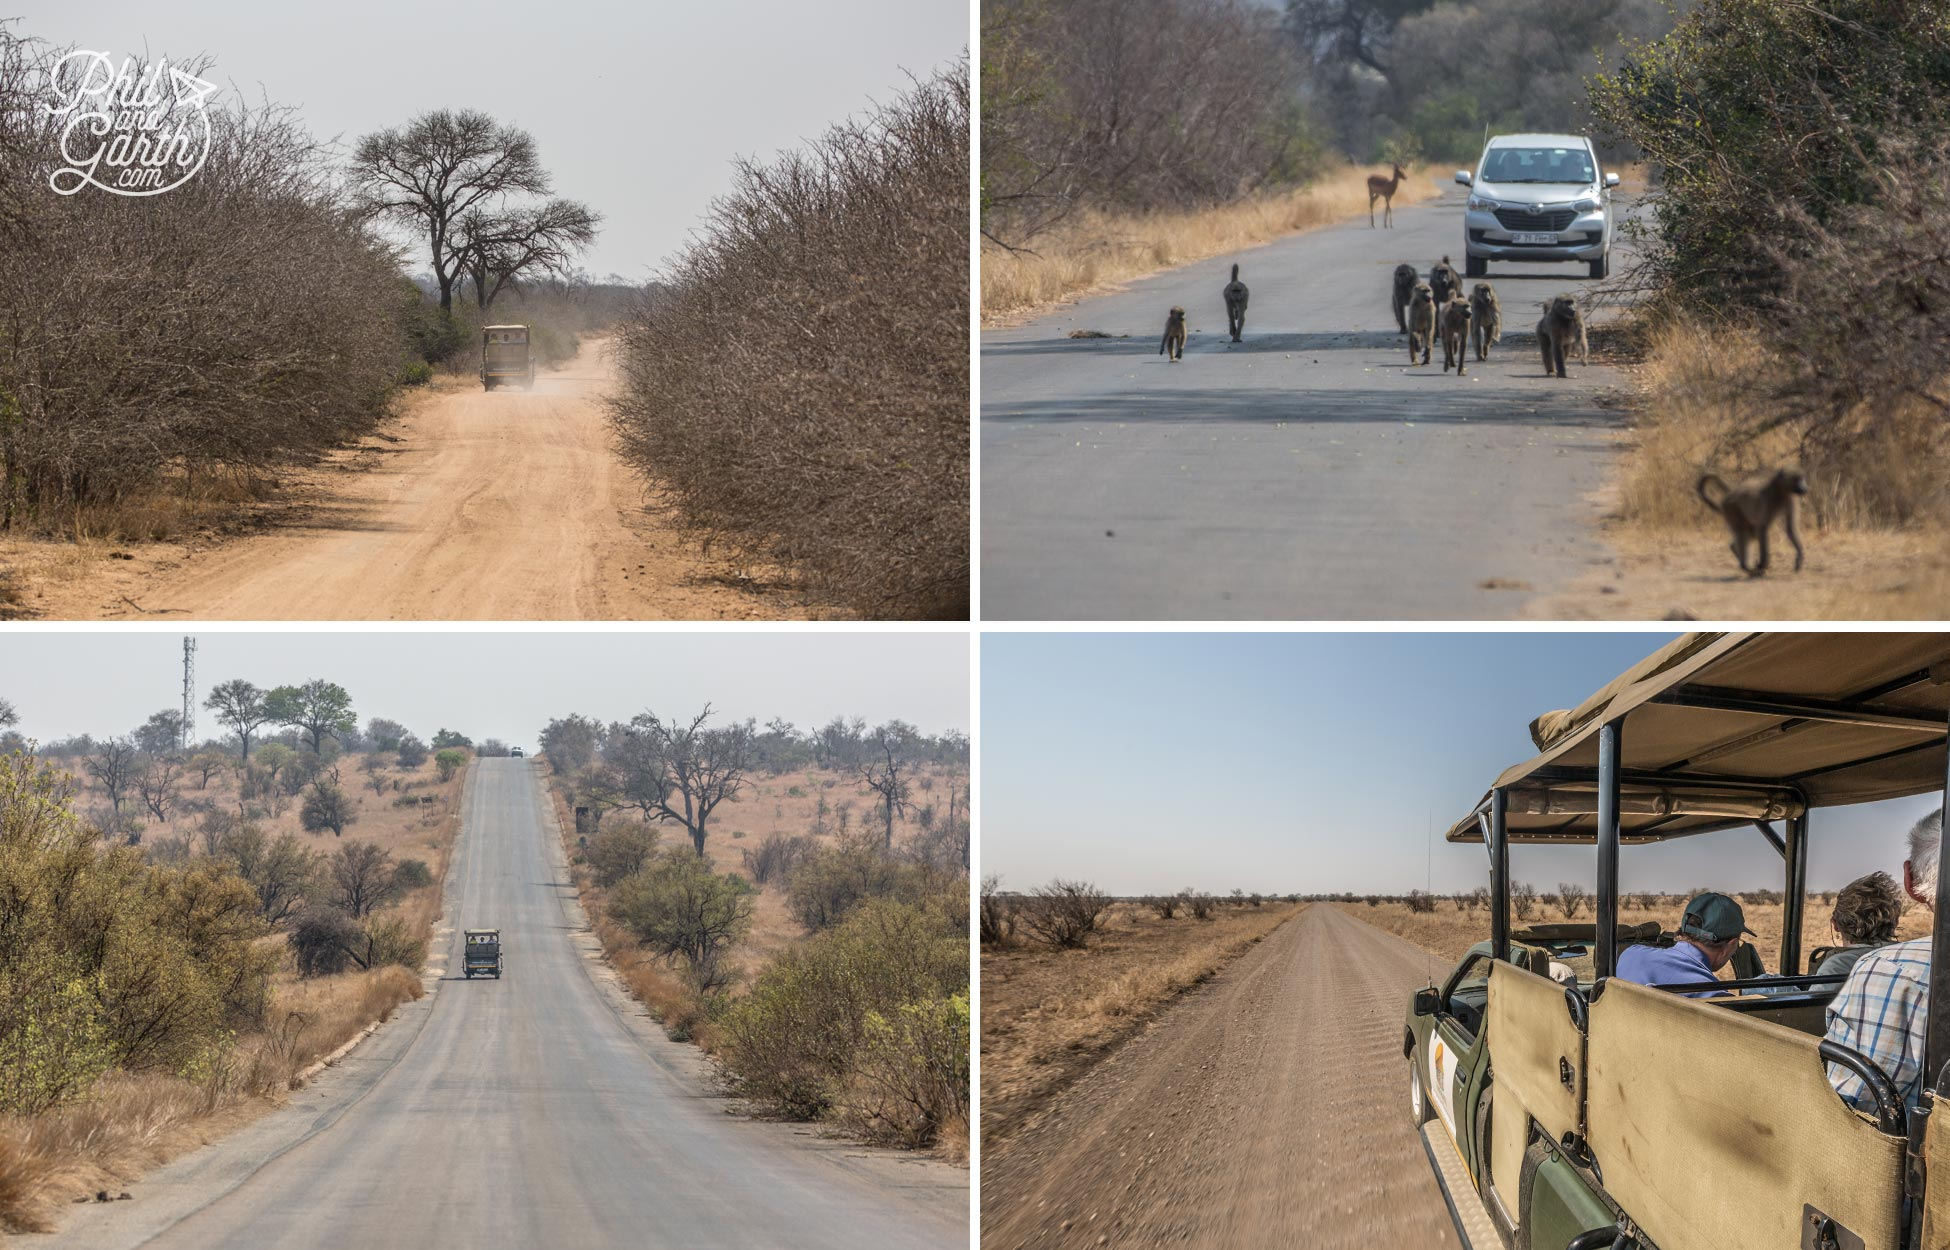 The different types of roads in Kruger National Park